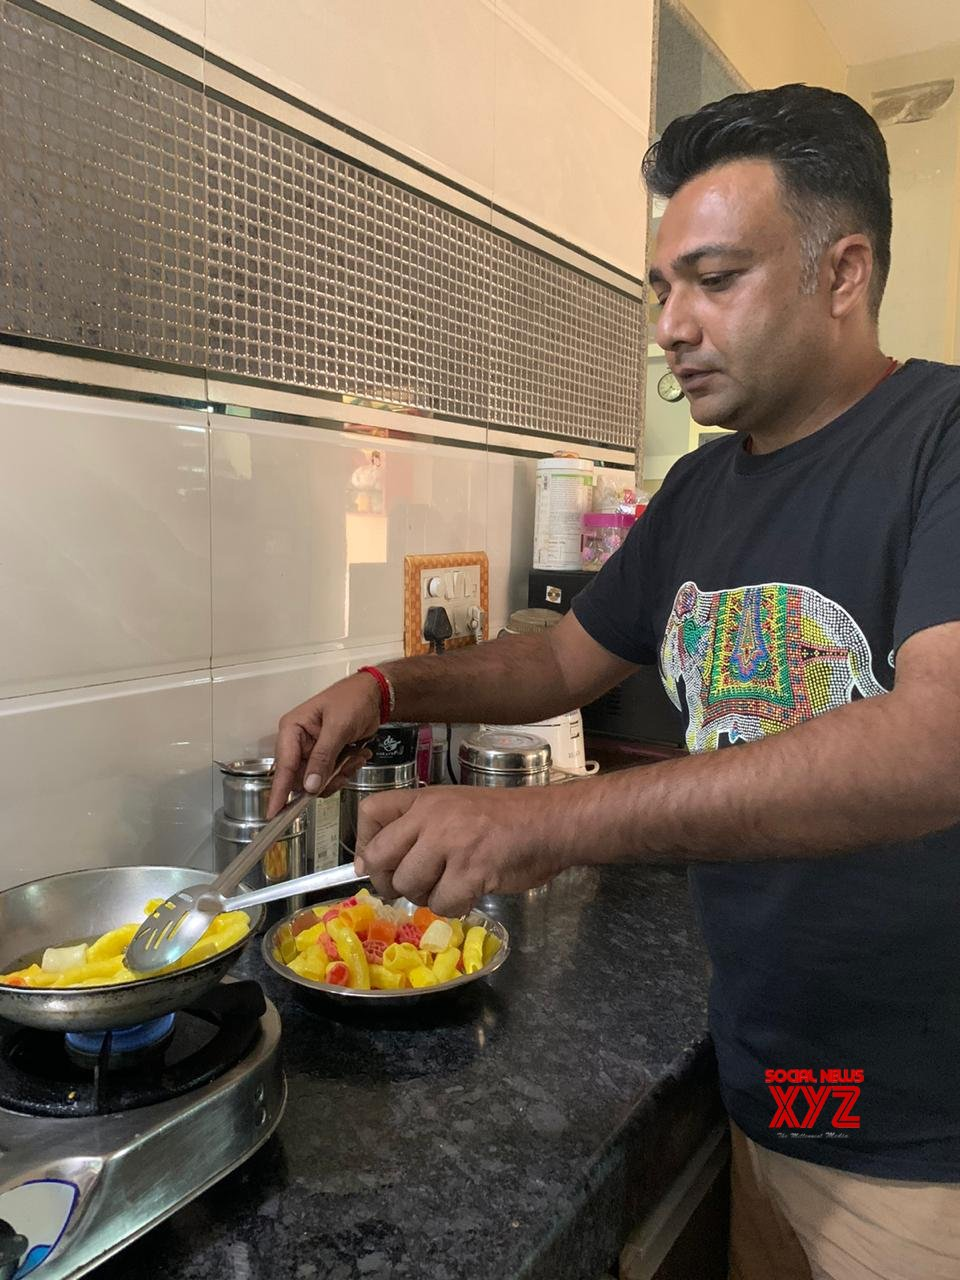 Actor Hemant Kher who has recently amazed the audience with his performance in Scam 1992, shares about his love for cooking food, diet, fitness and many more things....